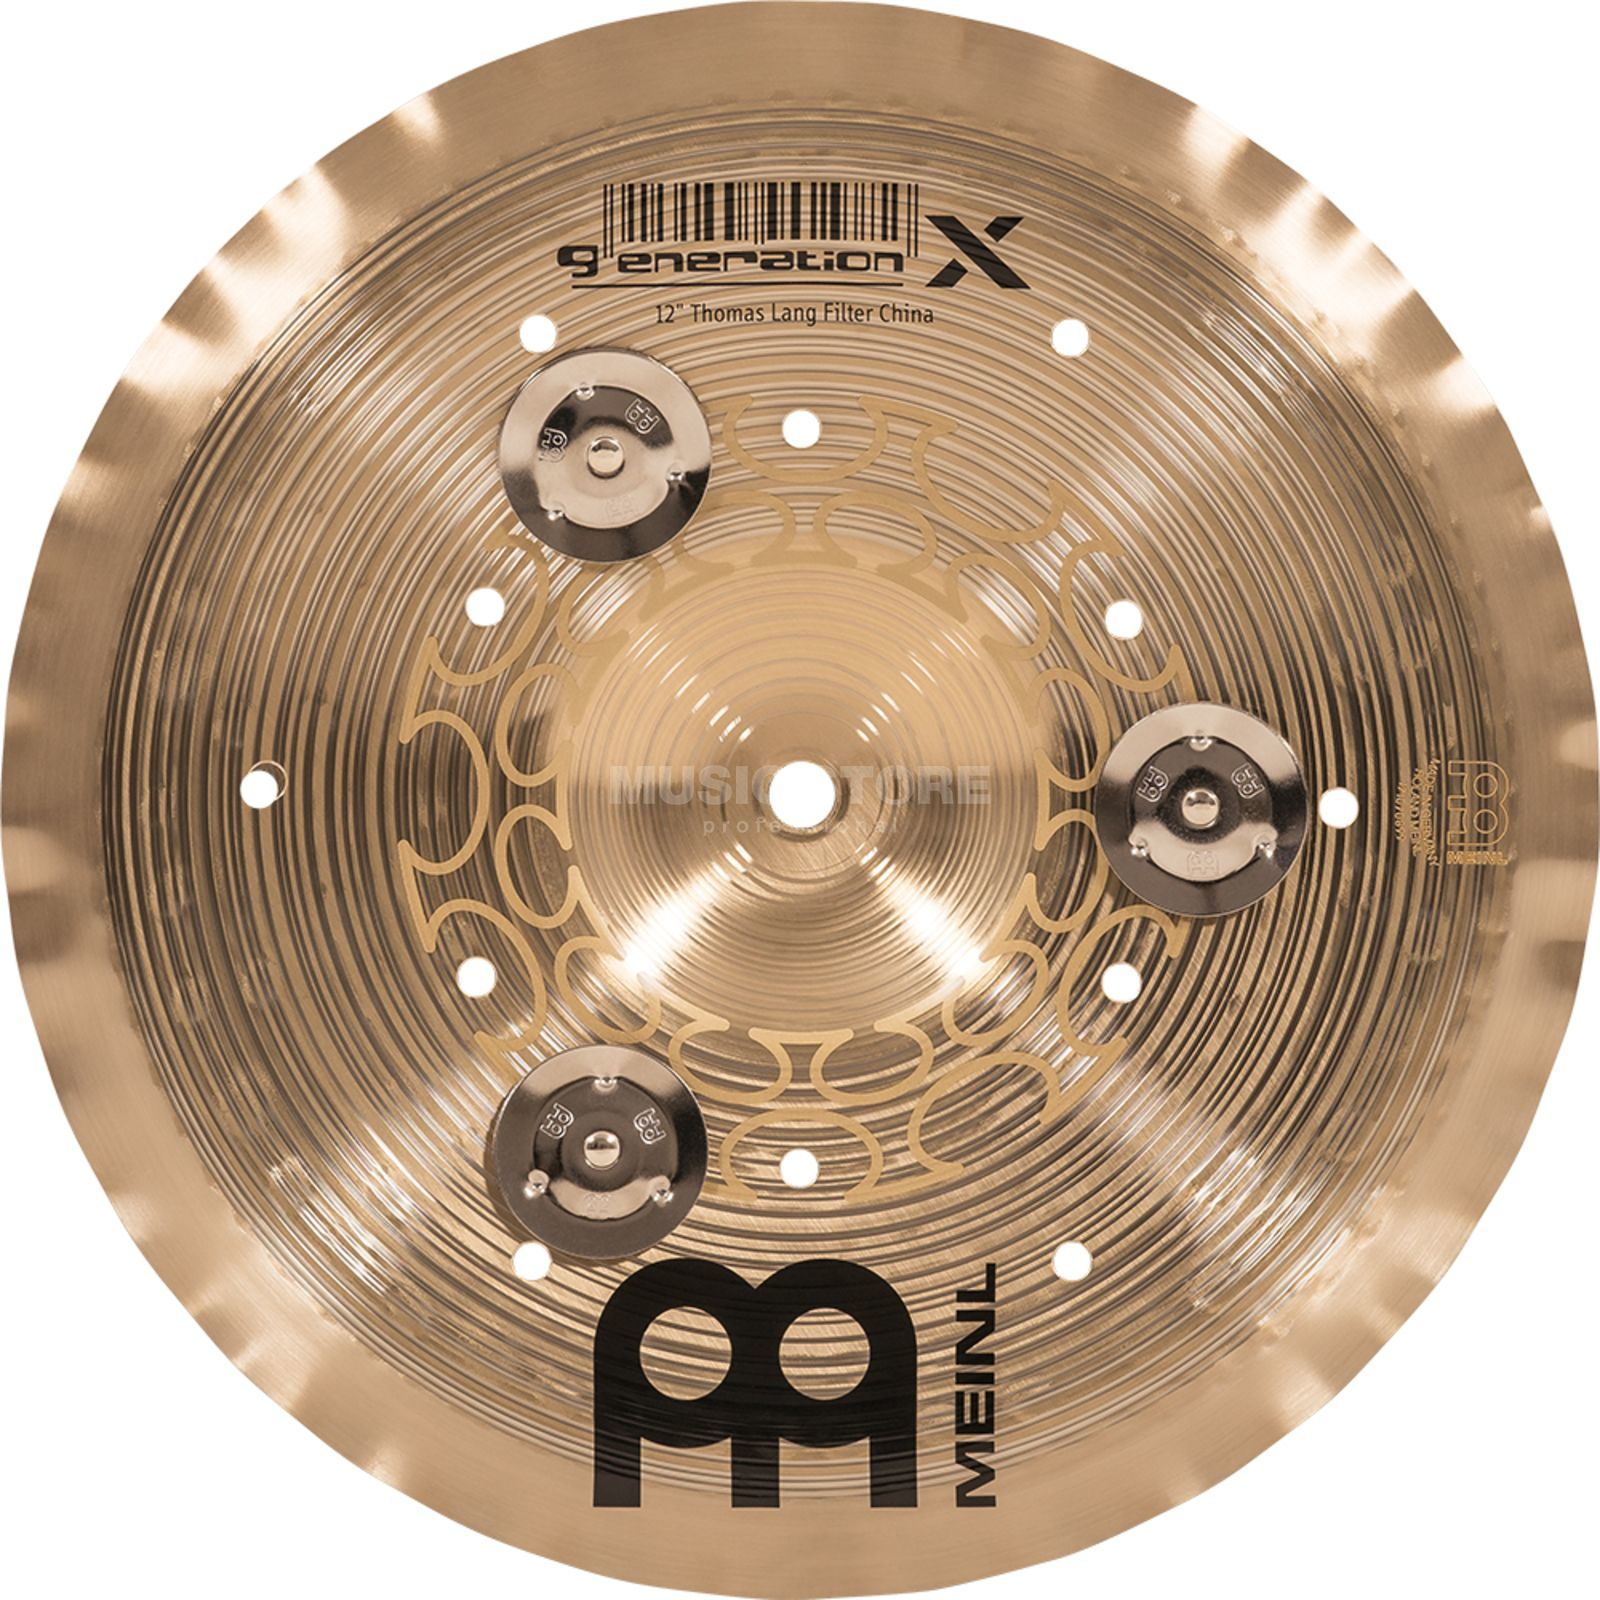 "Meinl Generation X Filter China 12"" GX-12FCH-J, with Jingles Изображение товара"